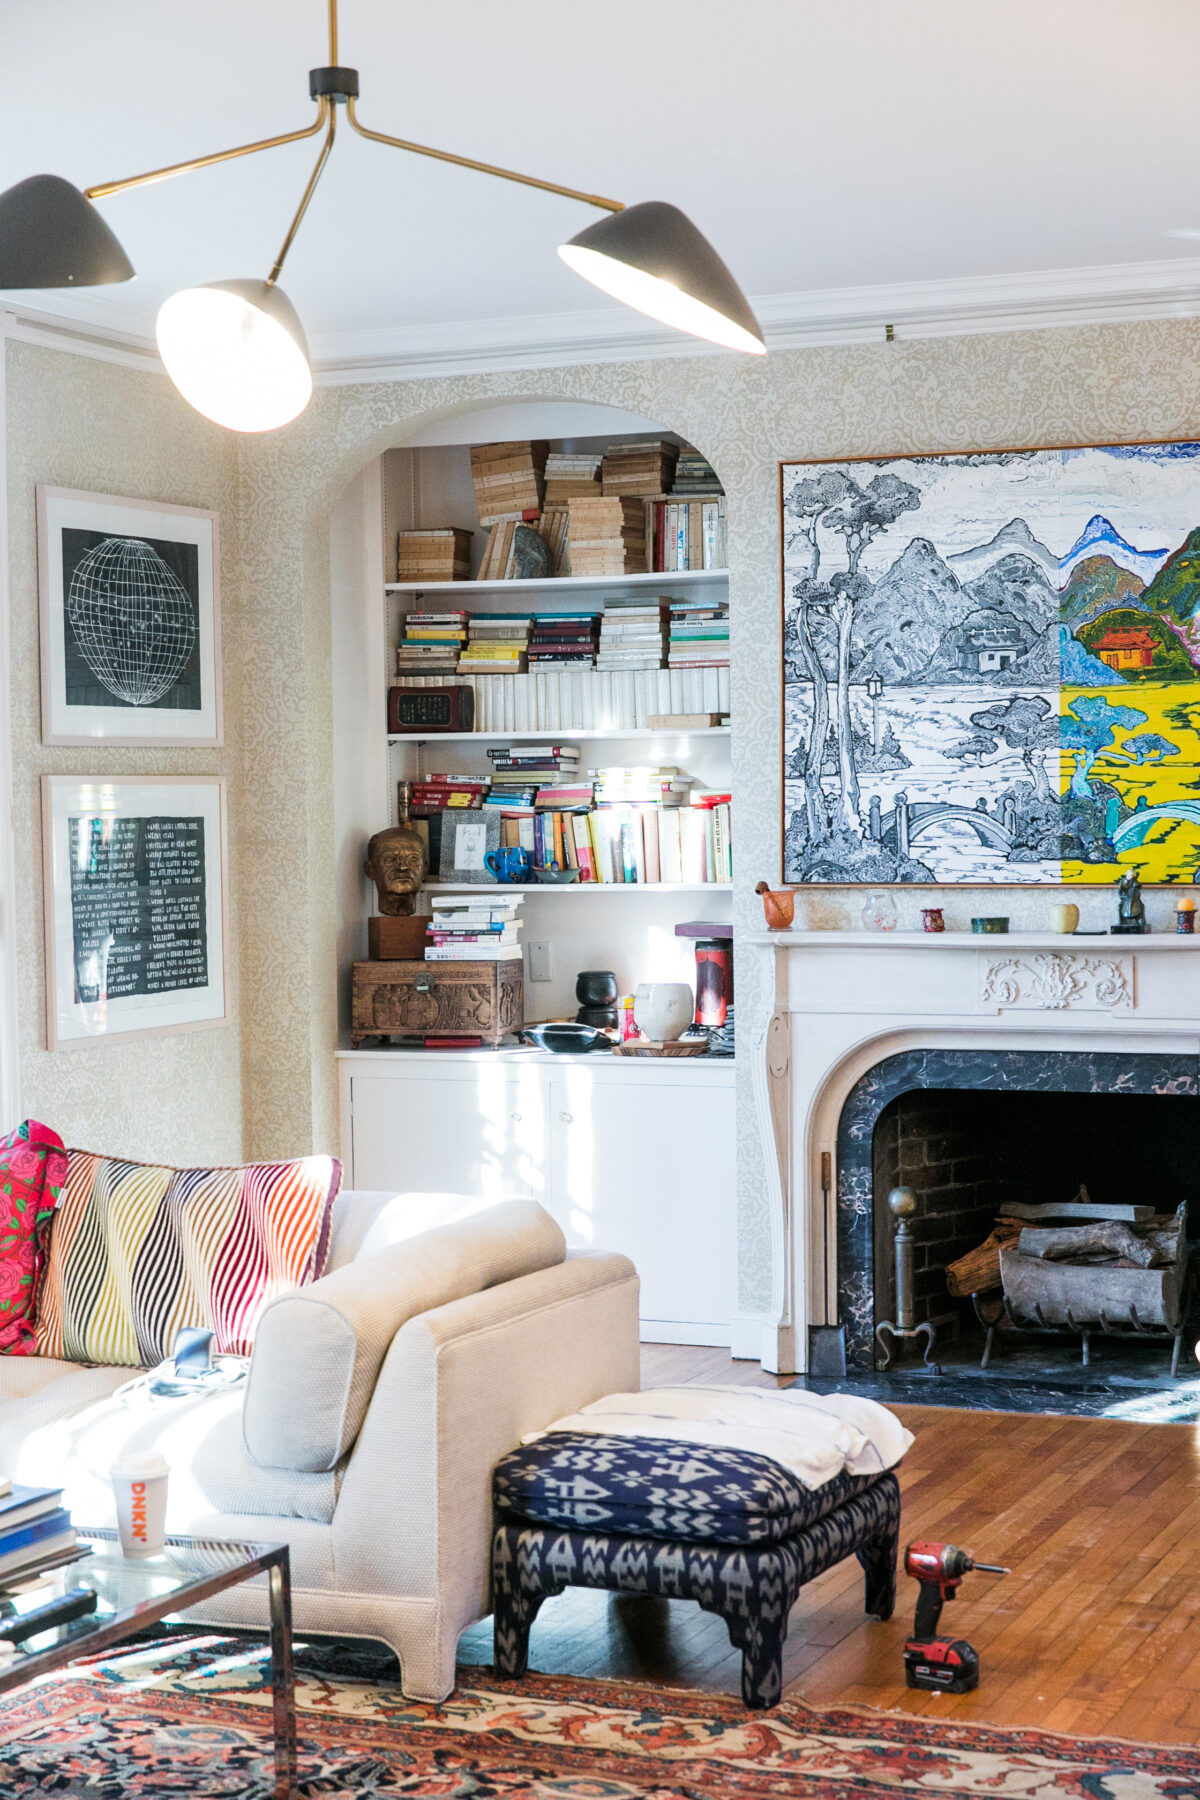 How I Revived a Messy Living Room in this Classic 1904 Spanish Colonial | In-Person Design | Jessica Brigham Magazine Ready for Life | JessicaBrigham.com